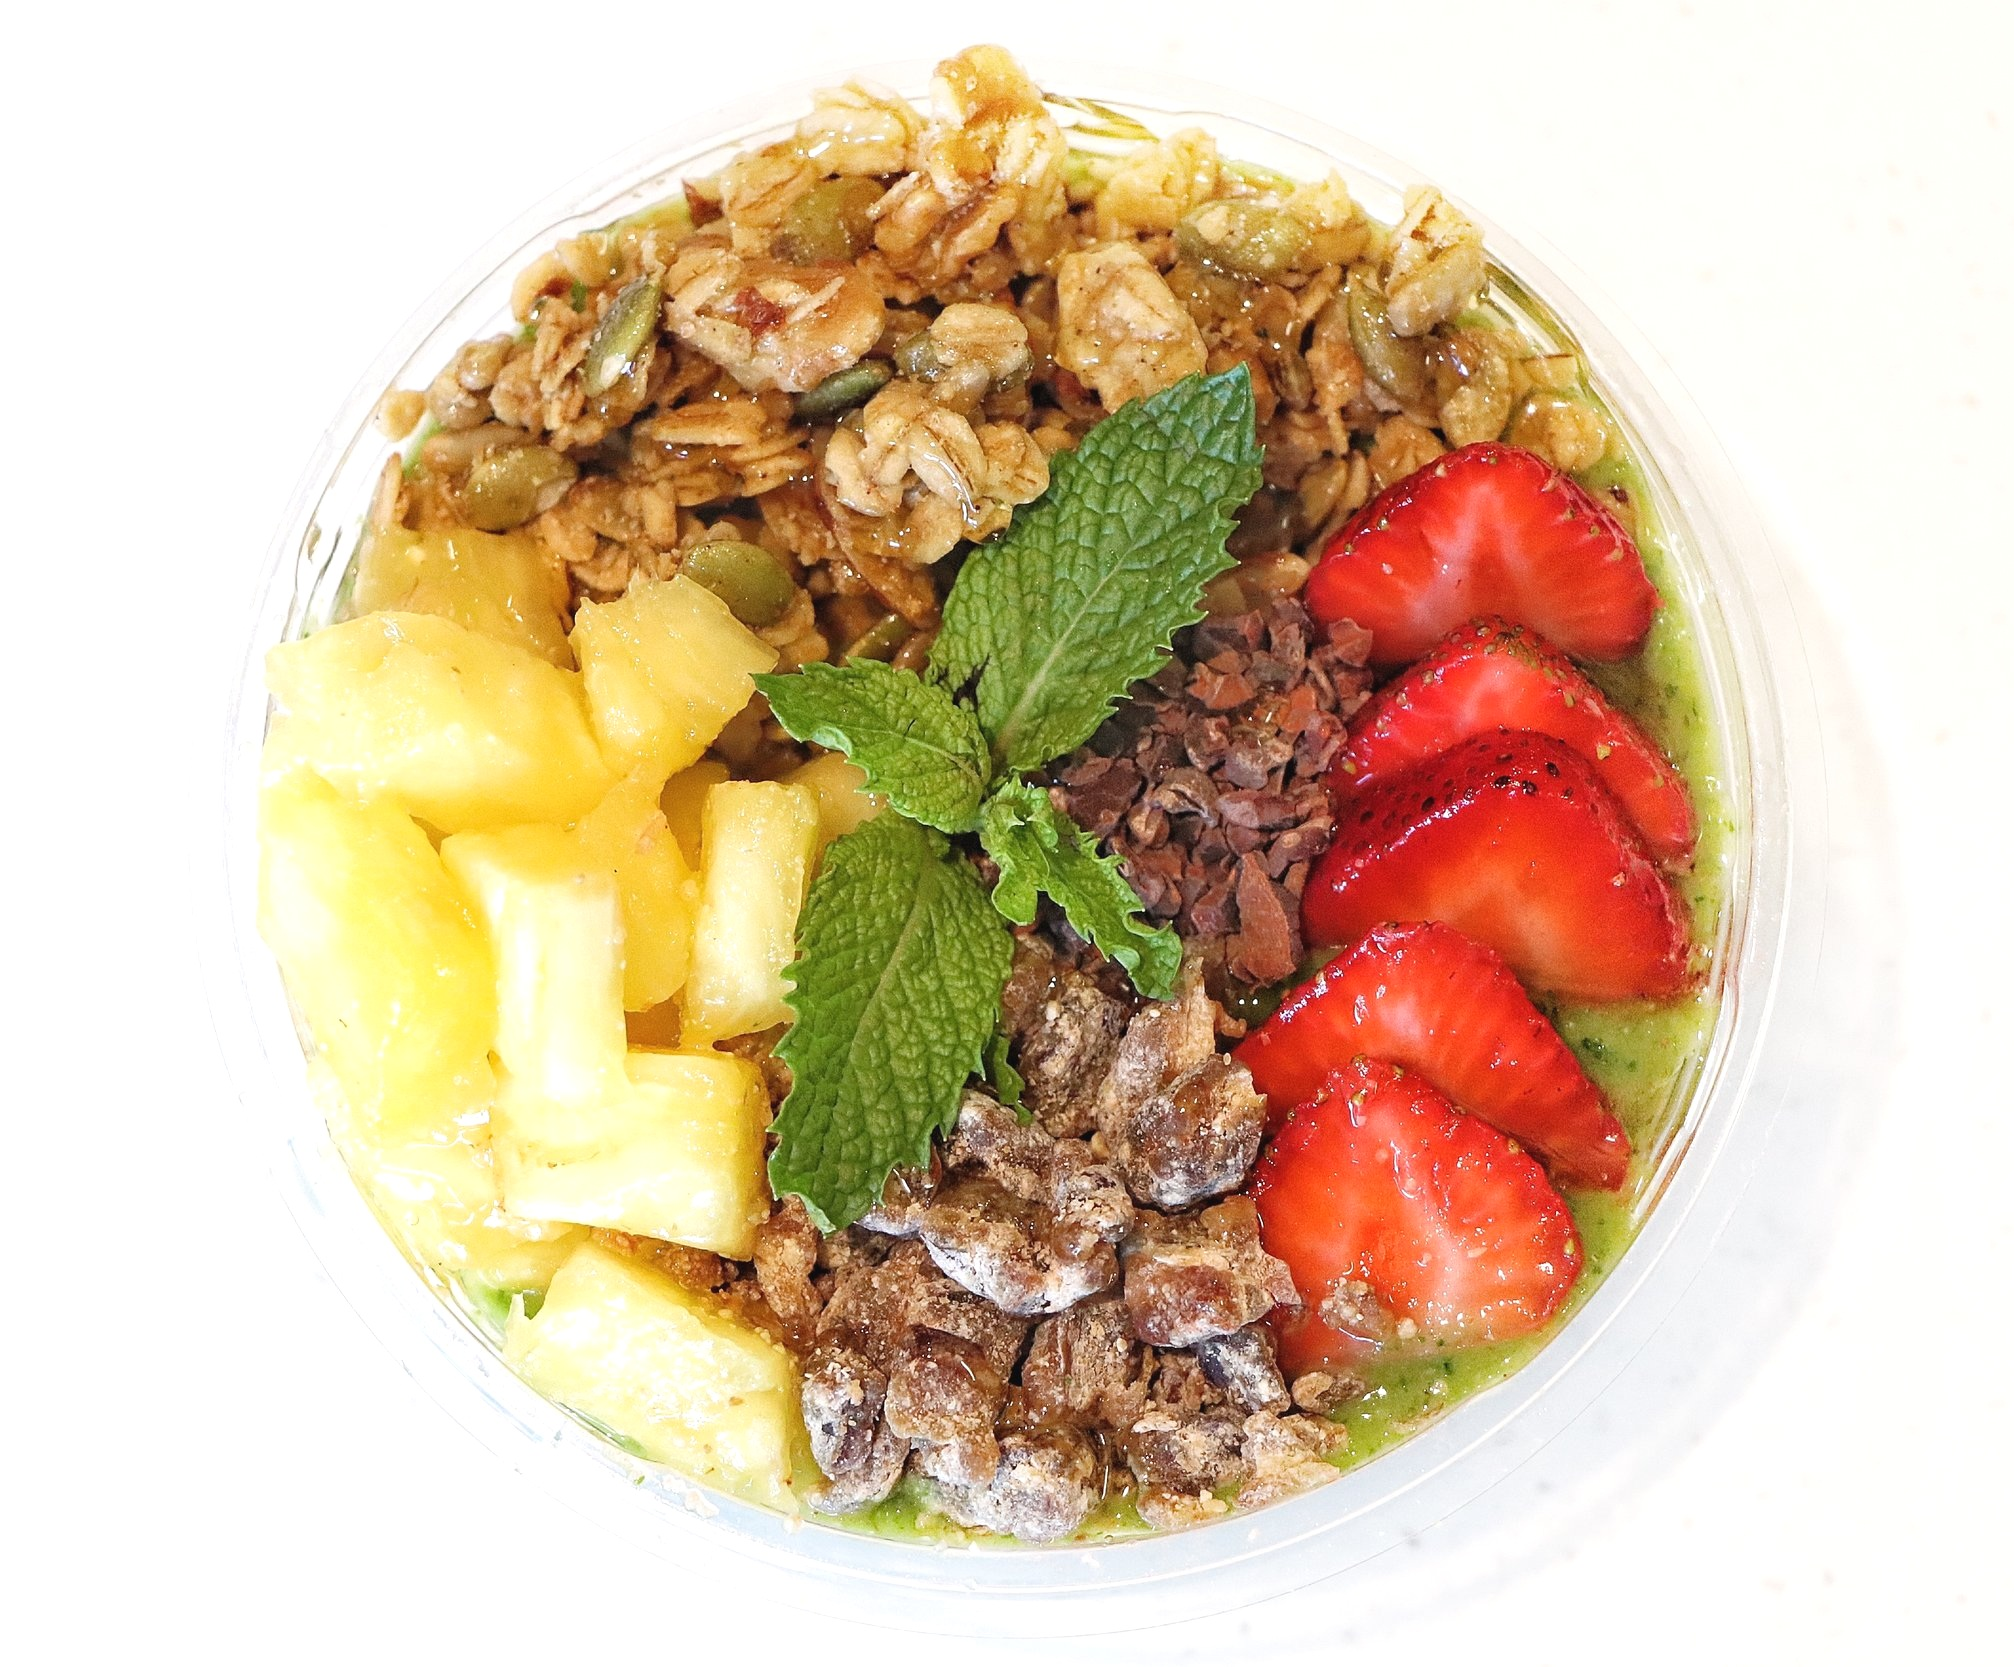 Matcha : Spinach / Kale / Banana / Mango / Matcha / Hemp Seed / Flax Seed / Coconut Water / Lime  Topped with Pineapple, Strawberry, Dates, Granola, Cocoa Nibs, Mint, Drizzle of Honey